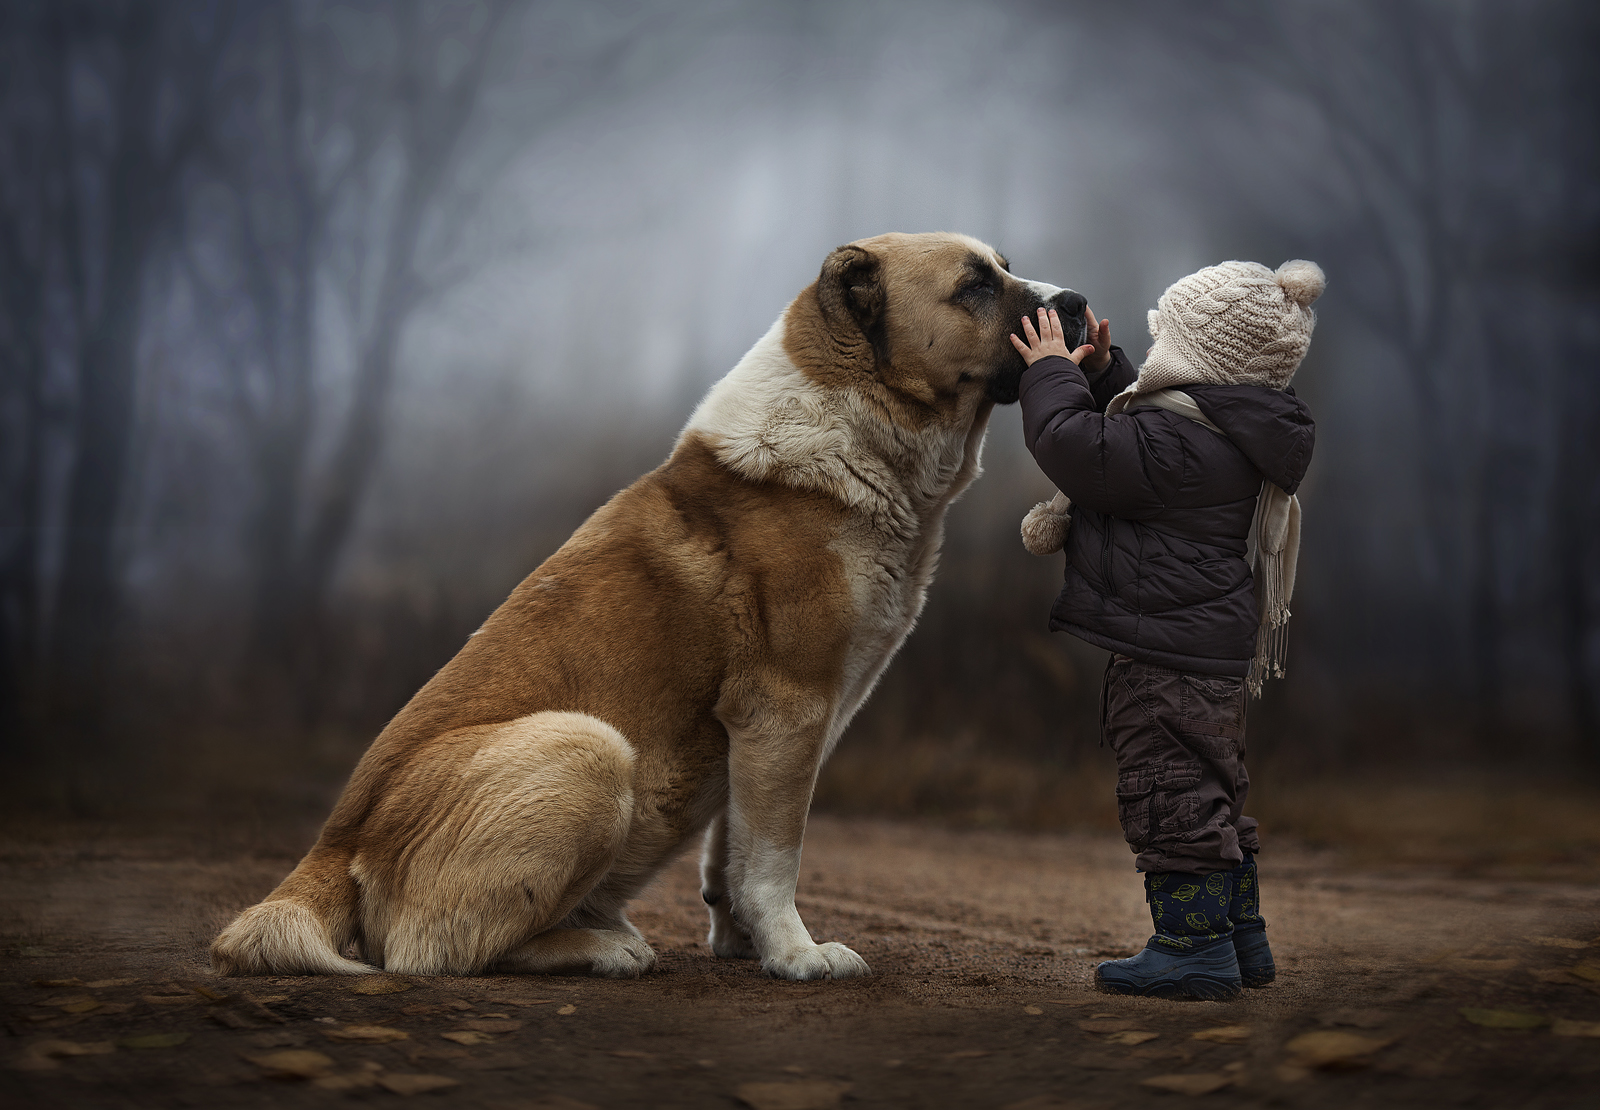 A series of photographs by the Russian photographer Elena Shumilova have been making the rounds on Facebook in recent days. Thousands of followers are leaving enthusiastic comments on Elena's page.